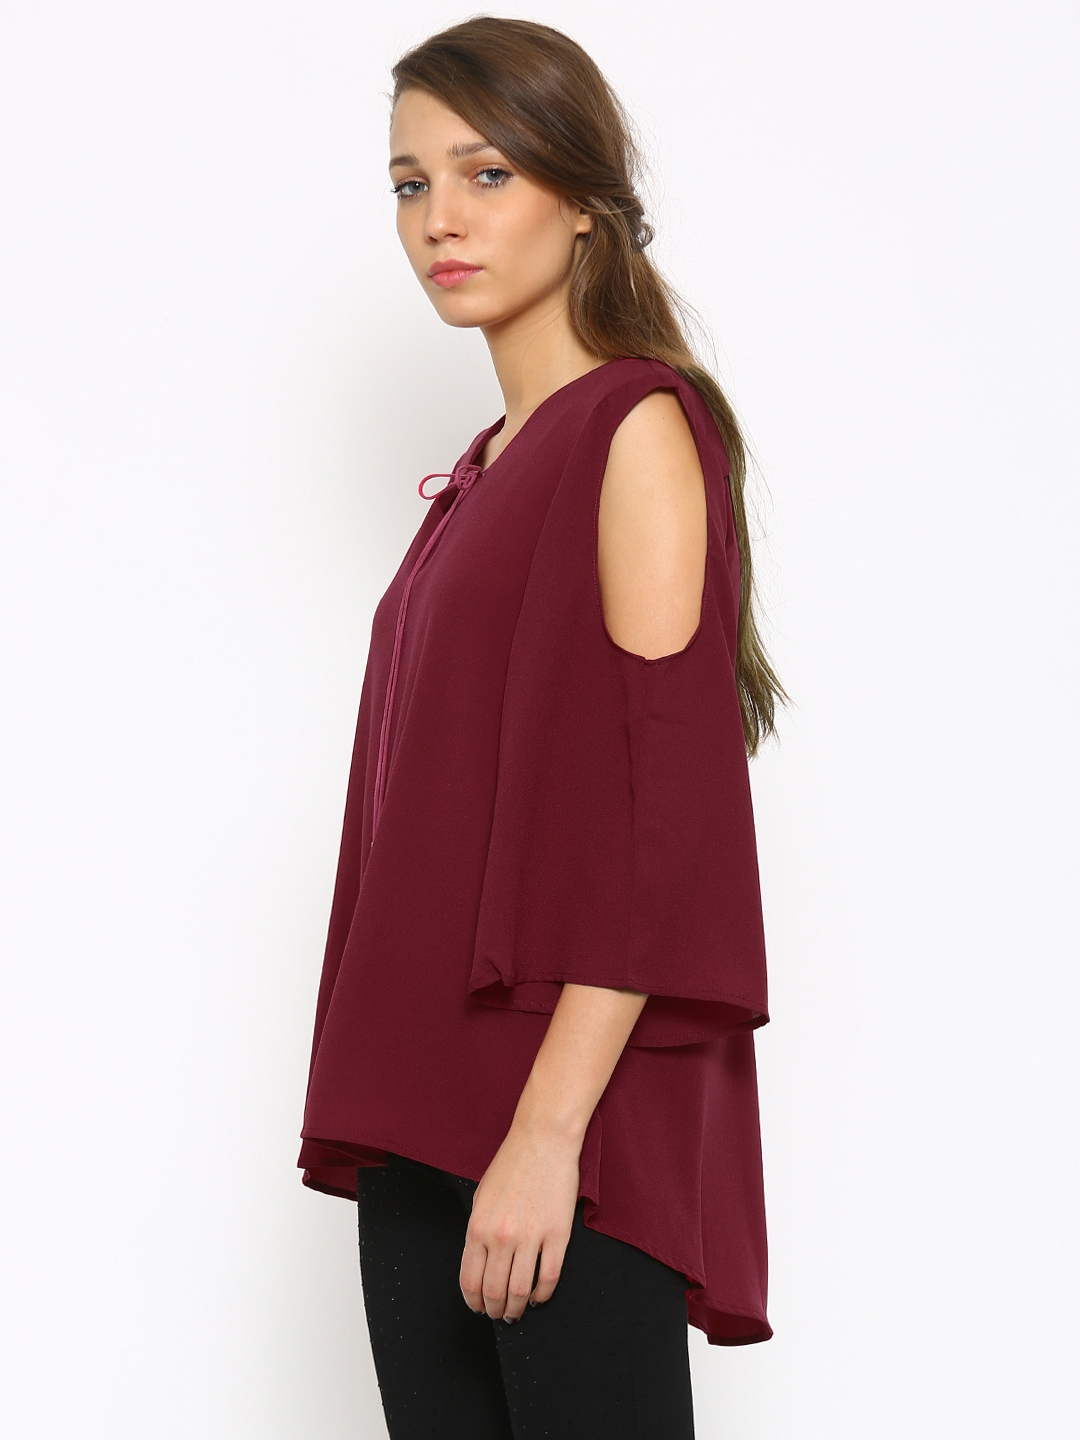 26fa633259d91a Buy Deal Jeans Women Maroon Cold Shoulder High Low Top - Tops for ...